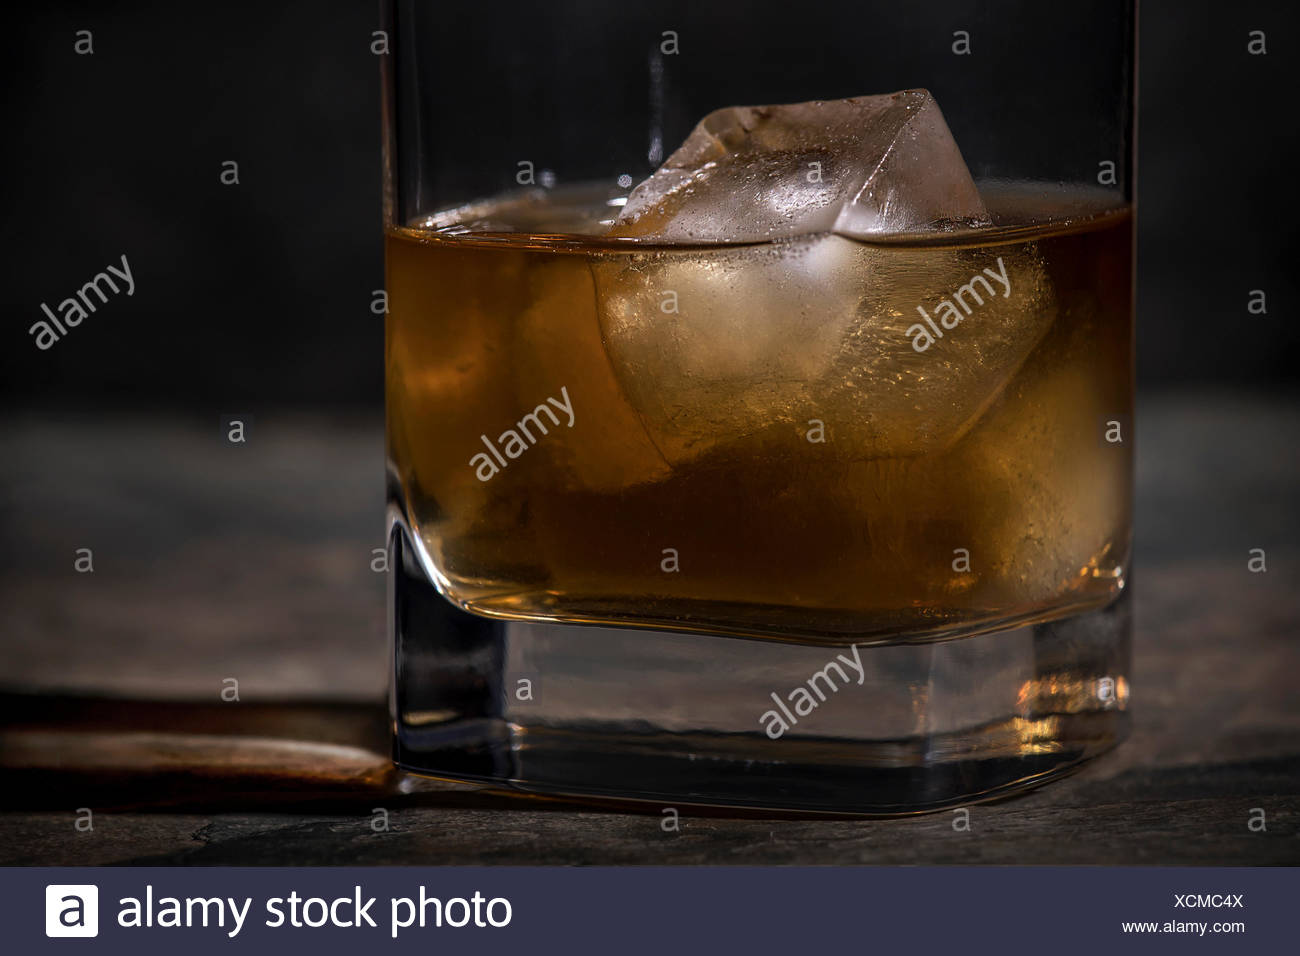 Tight macro shot of a glass of scotch with 1 large ice cube in a low ball glass on a dark stone surface. - Stock Image